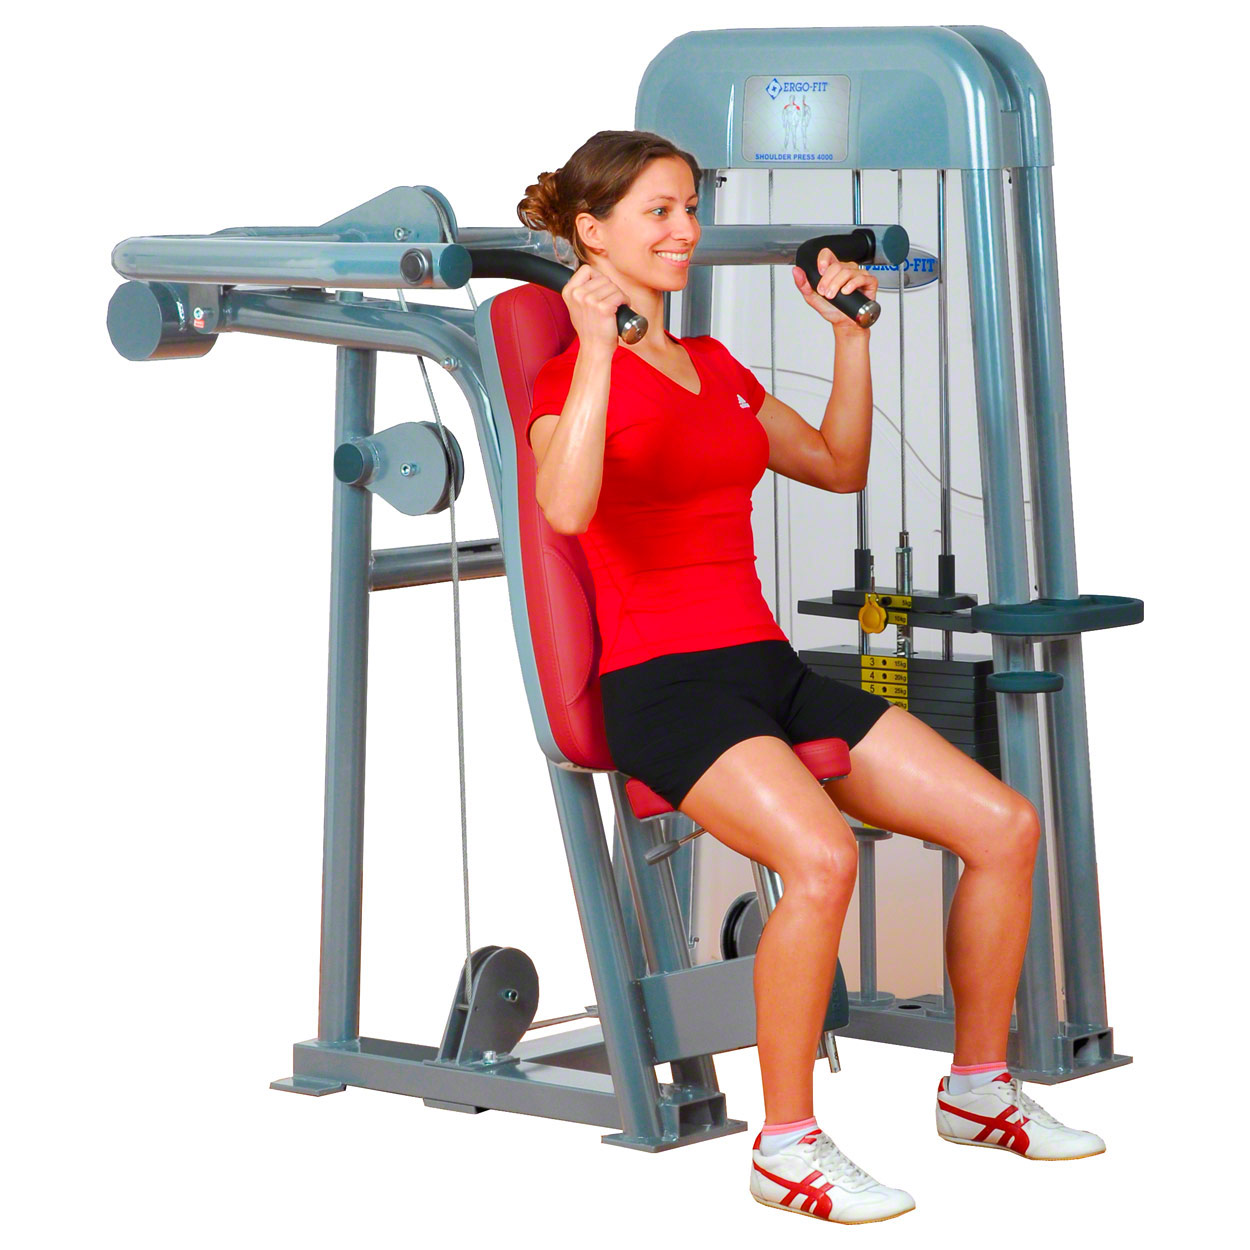 Kraftsportgeräte: ERGO-FIT Shoulder Press 4000 med